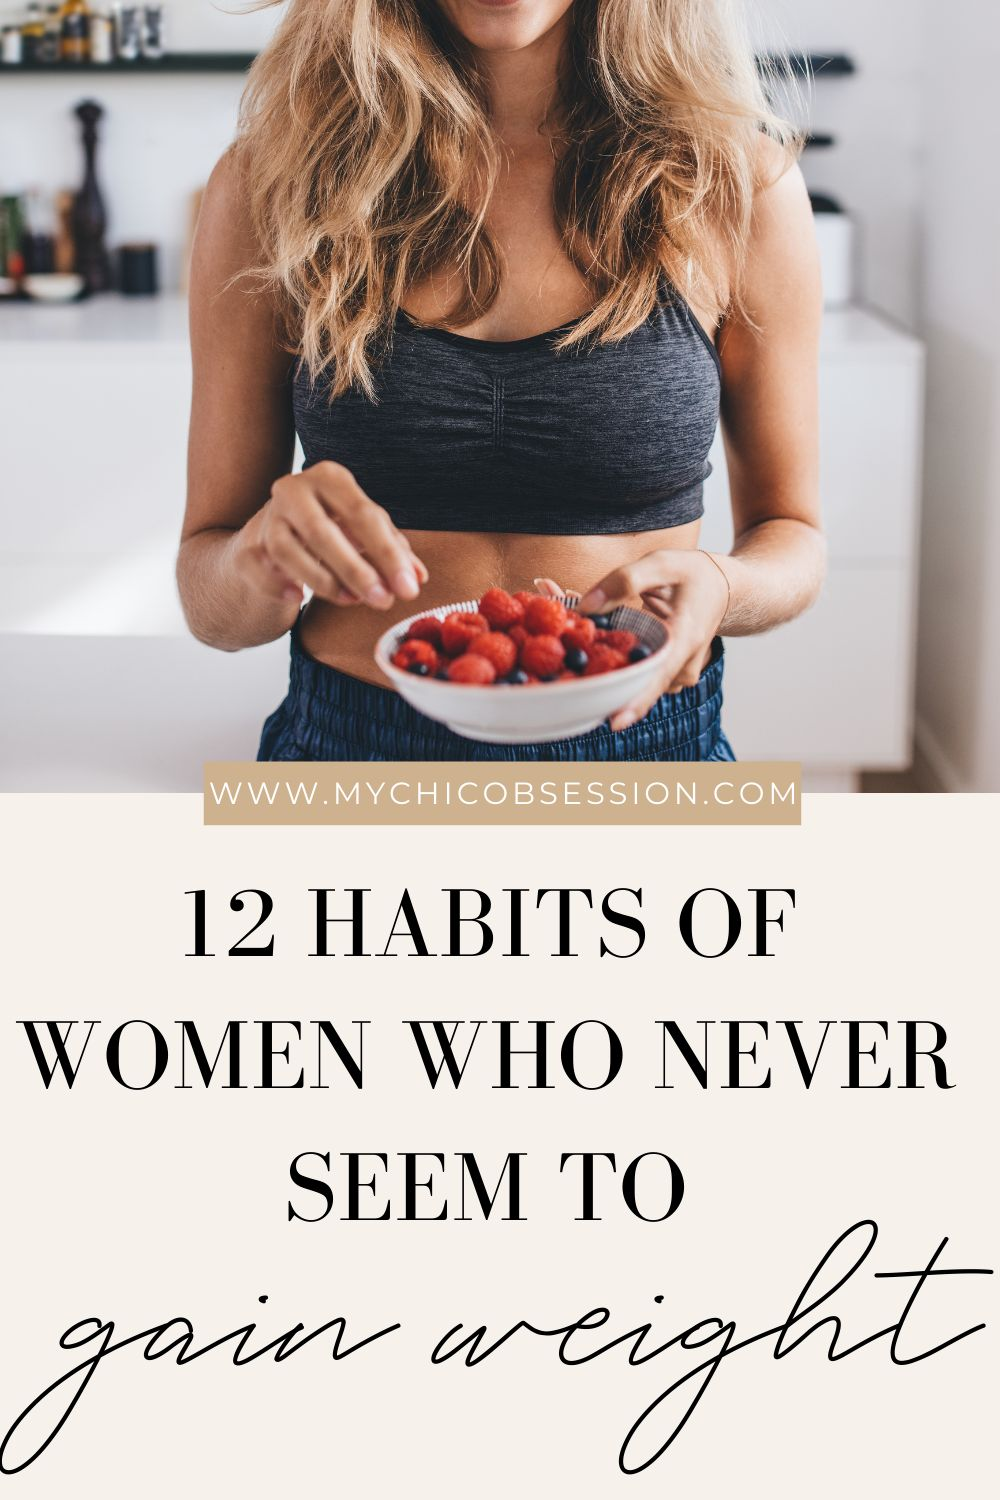 habits of women who never seem to gain weight